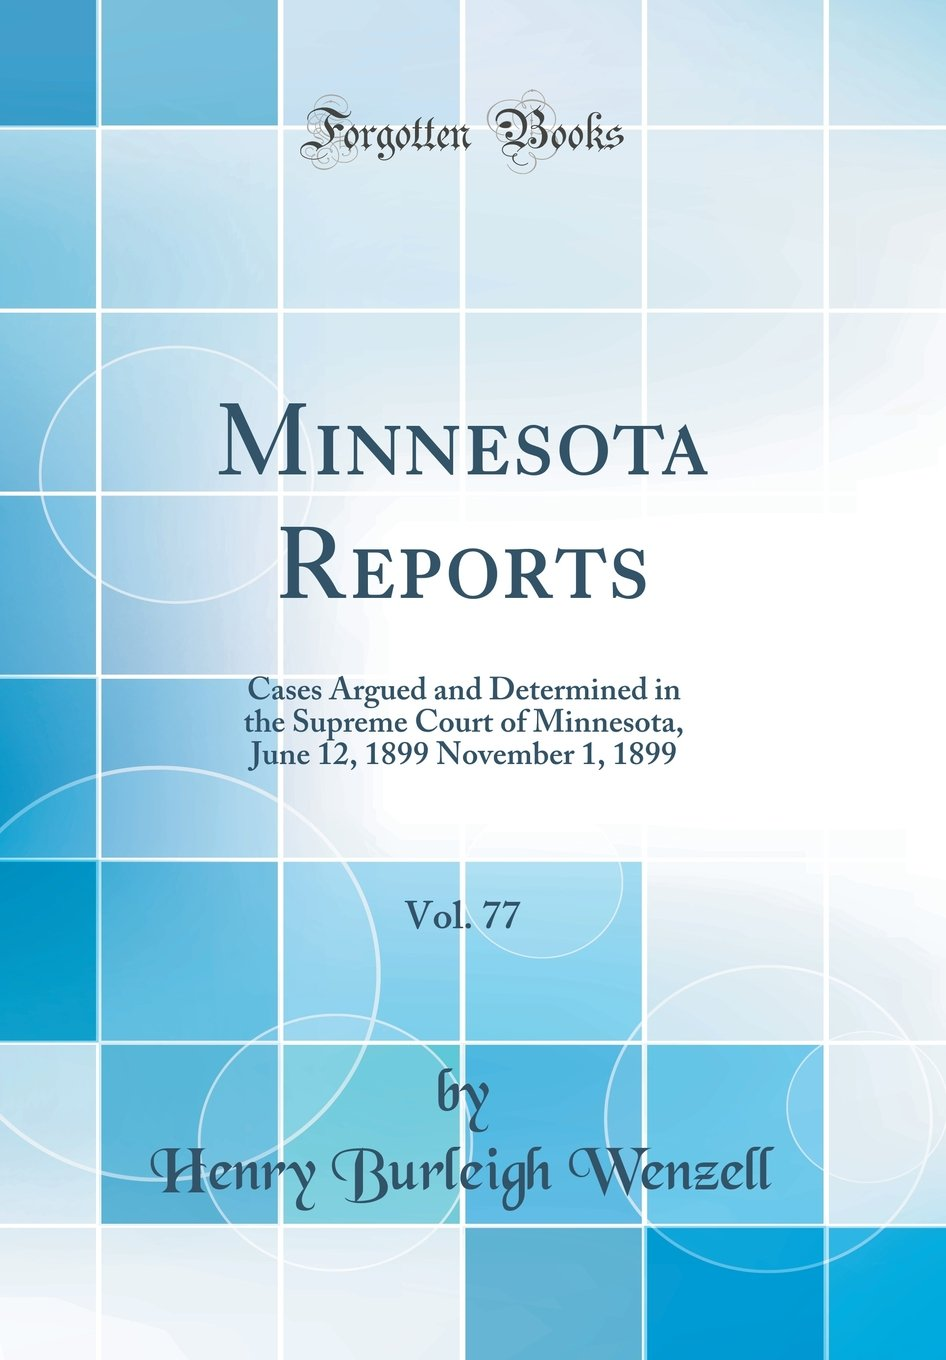 Minnesota Reports, Vol. 77: Cases Argued and Determined in the Supreme Court of Minnesota, June 12, 1899 November 1, 1899 (Classic Reprint) pdf epub